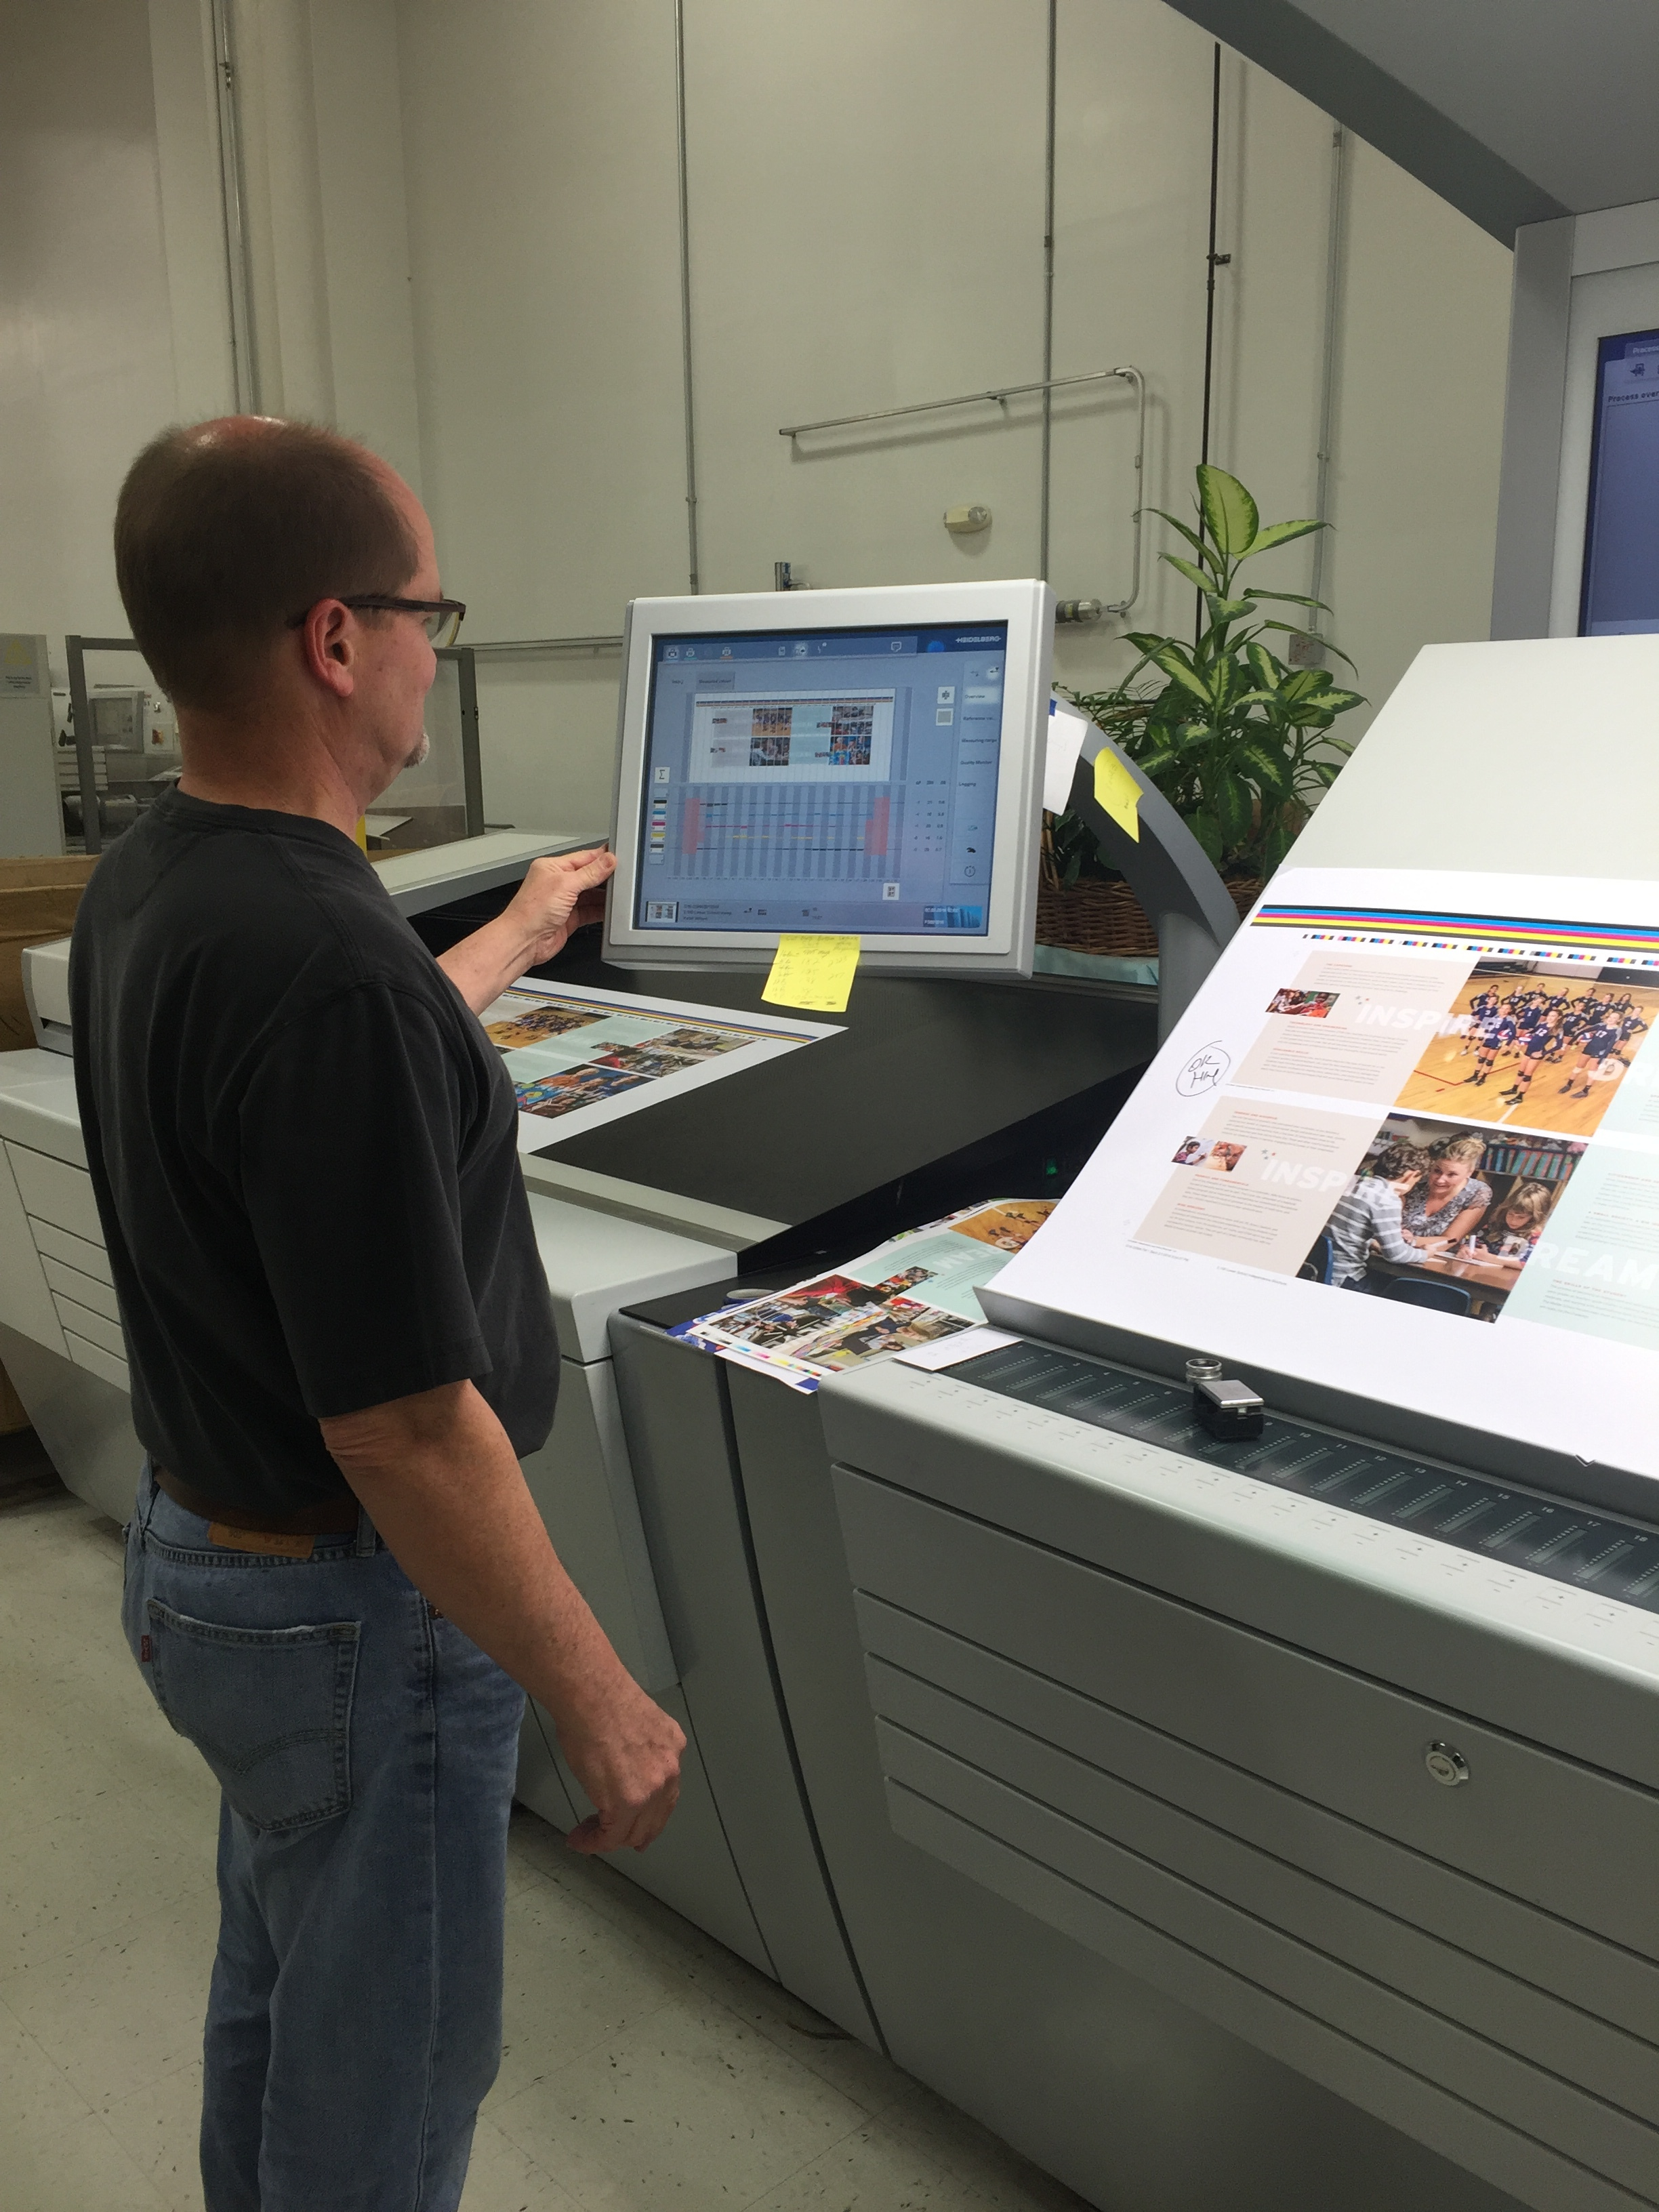 Mike Bandomer, the pressman from Brilliant Graphics, is supervising the press run. For those of you who have never seen the printing process before, this is what the control console at a printing press looks like!